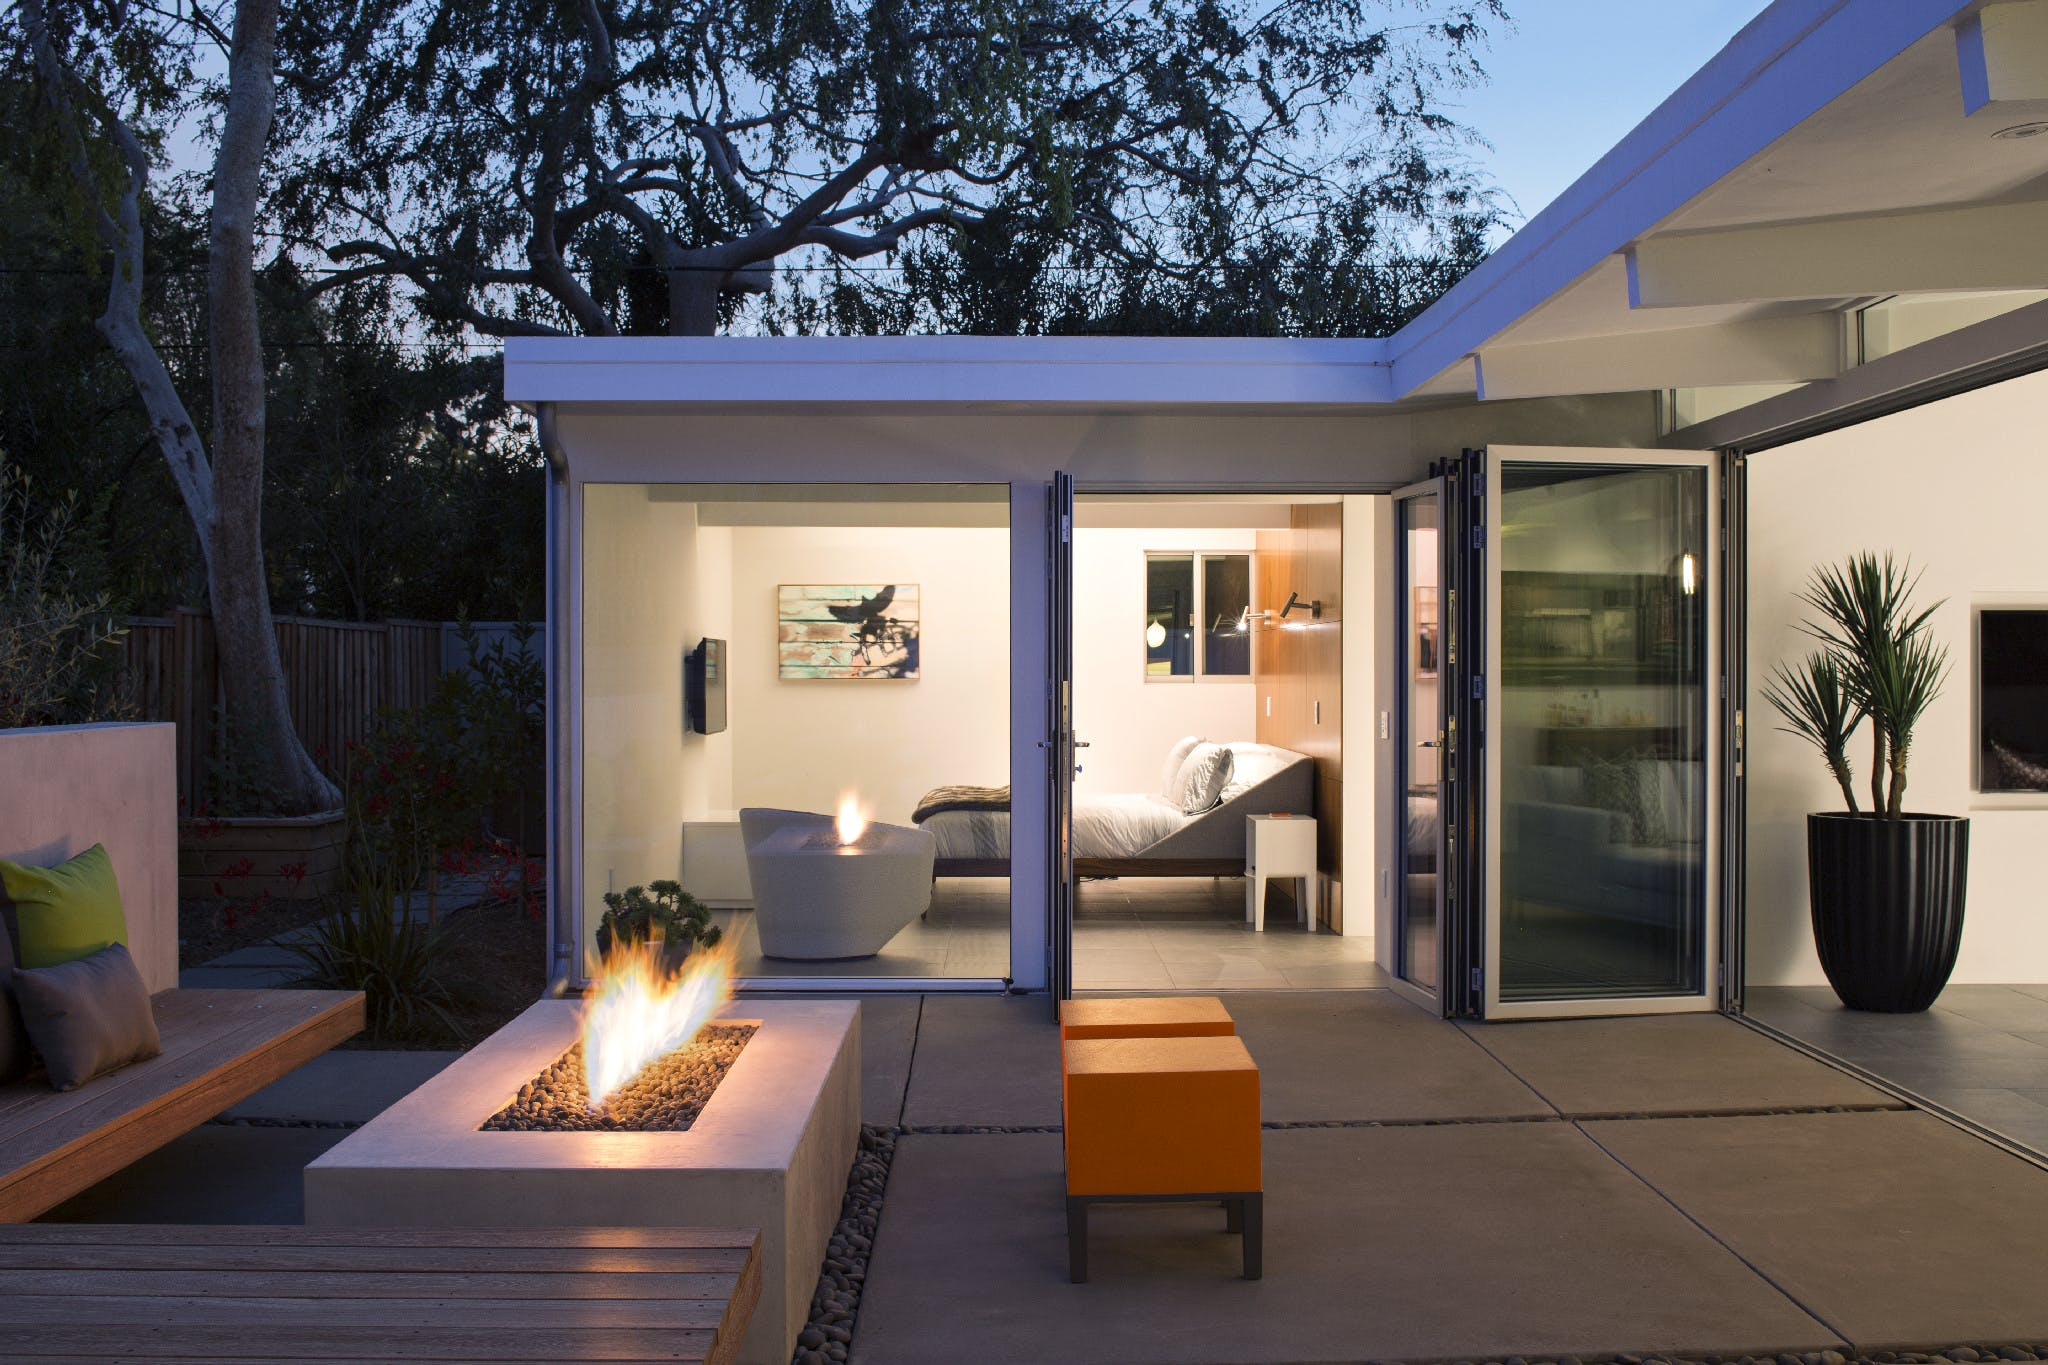 Indoor/Outdoor Living Areas Expand Your Living Space